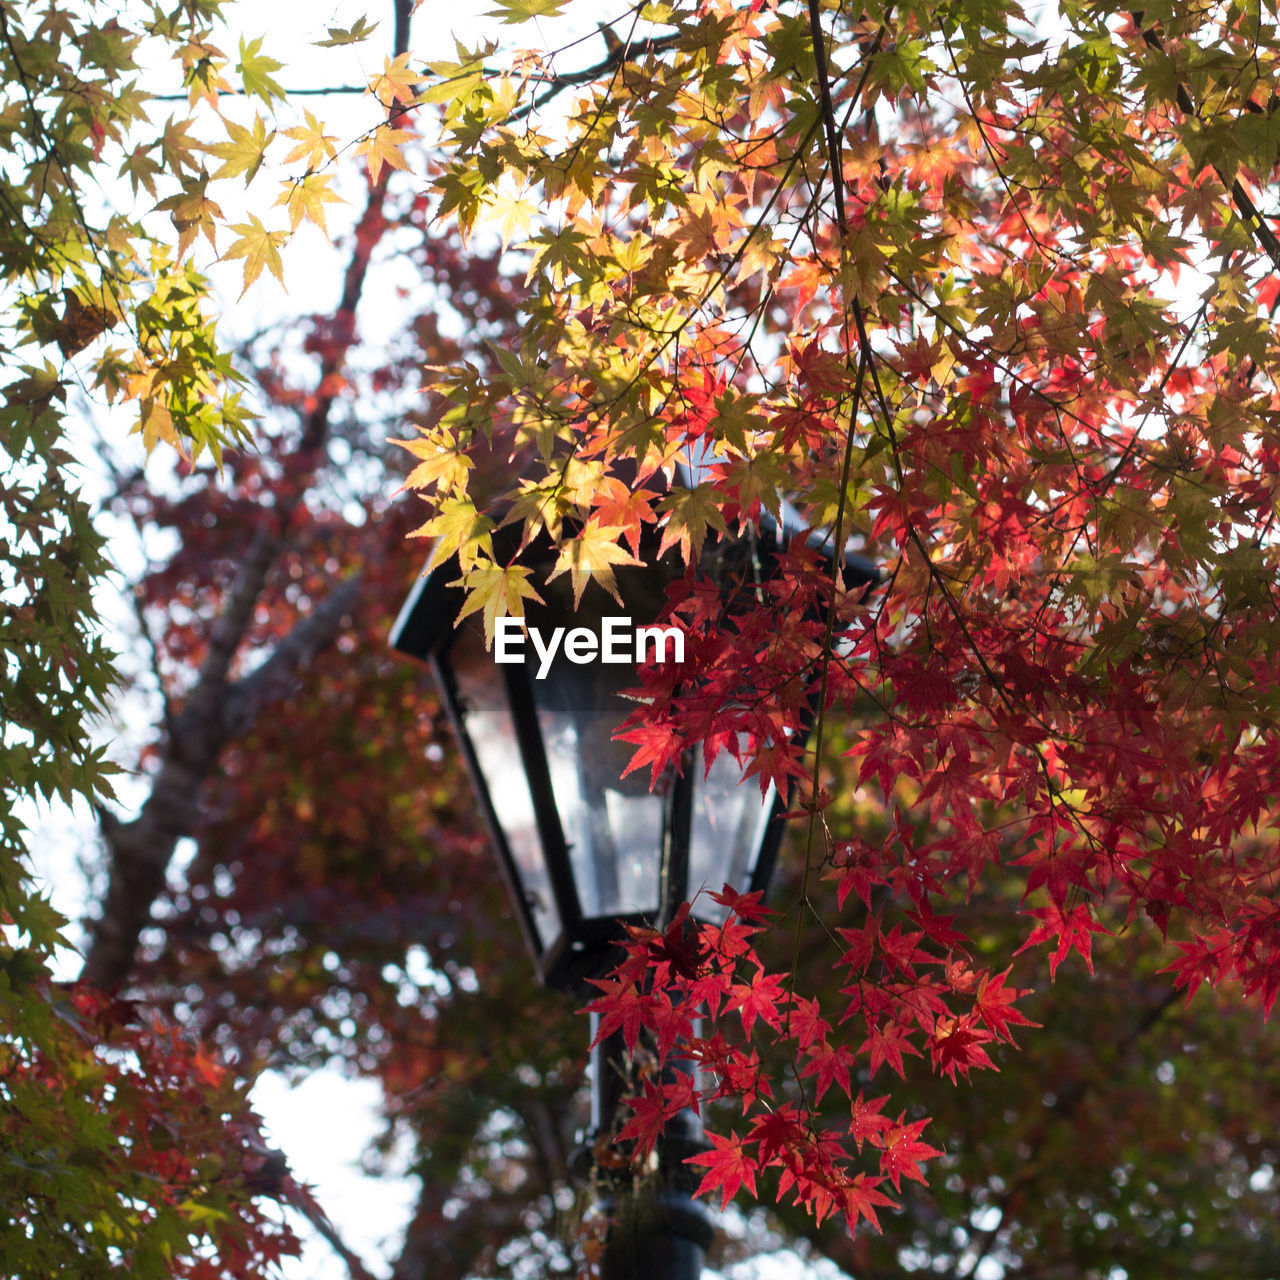 tree, plant, autumn, change, growth, branch, low angle view, day, leaf, plant part, no people, beauty in nature, nature, focus on foreground, outdoors, maple tree, maple leaf, close-up, tranquility, orange color, natural condition, fall